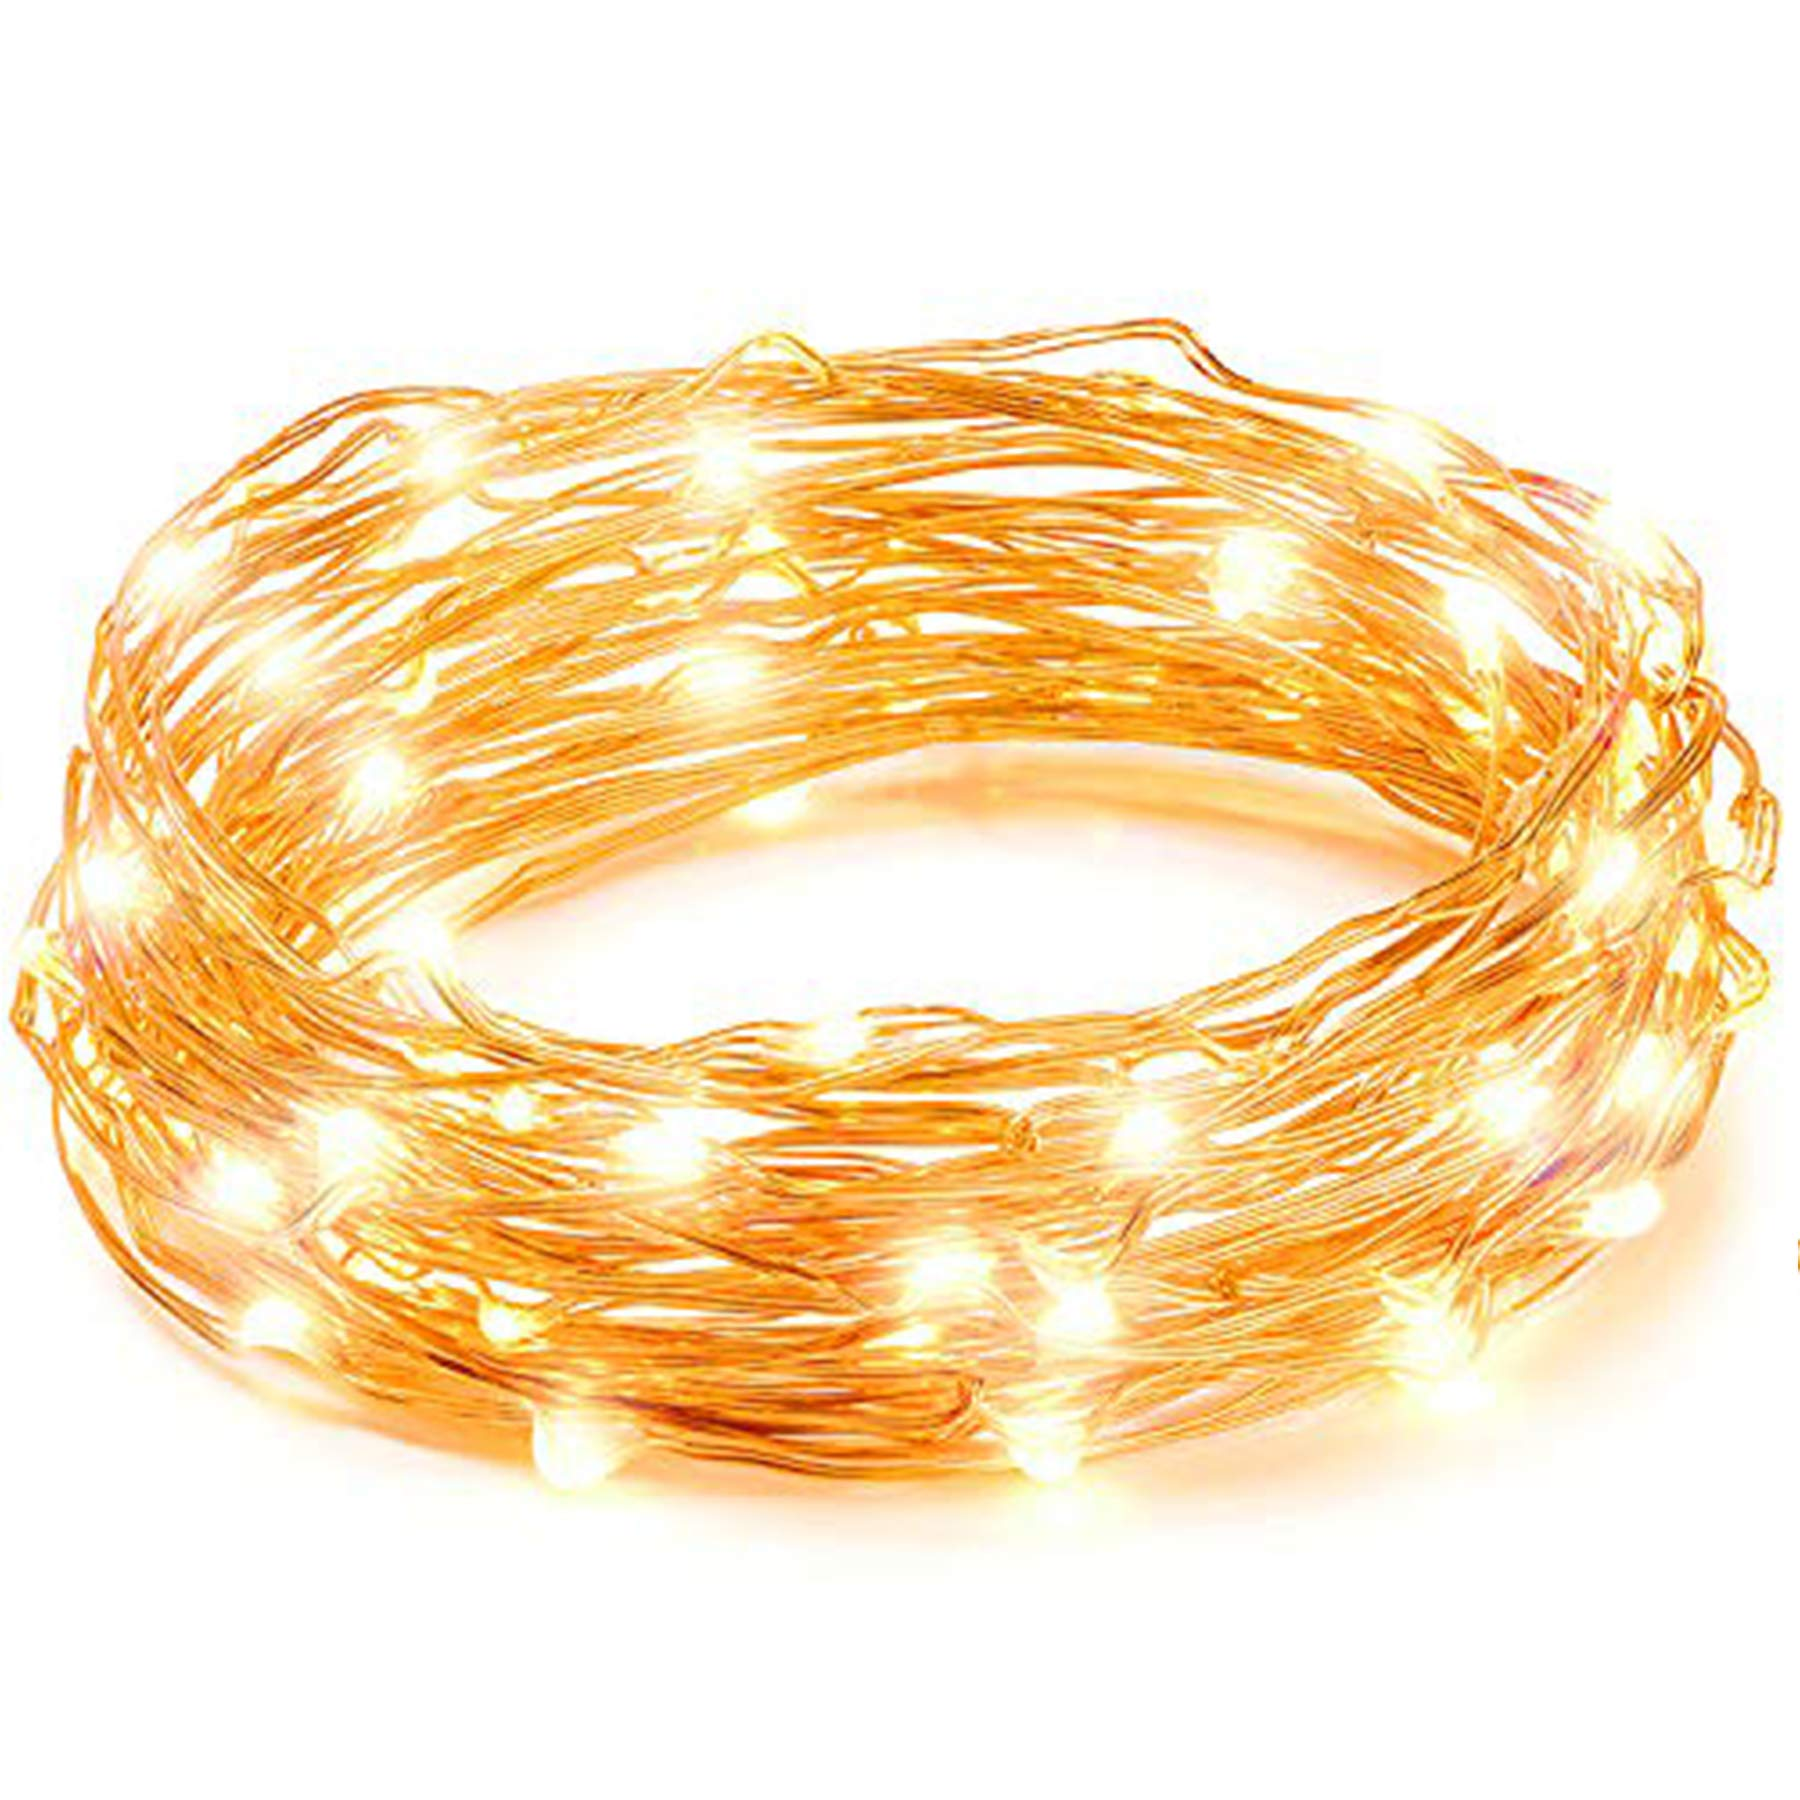 LED String Lights, Copper Wire Starry String Light, Soothing Decoration for Your Home & Bedroom, Elegant Rope Light Suitable for Christmas, Weddings, Parties Waterproof (33' 100 LEDs) - Vont